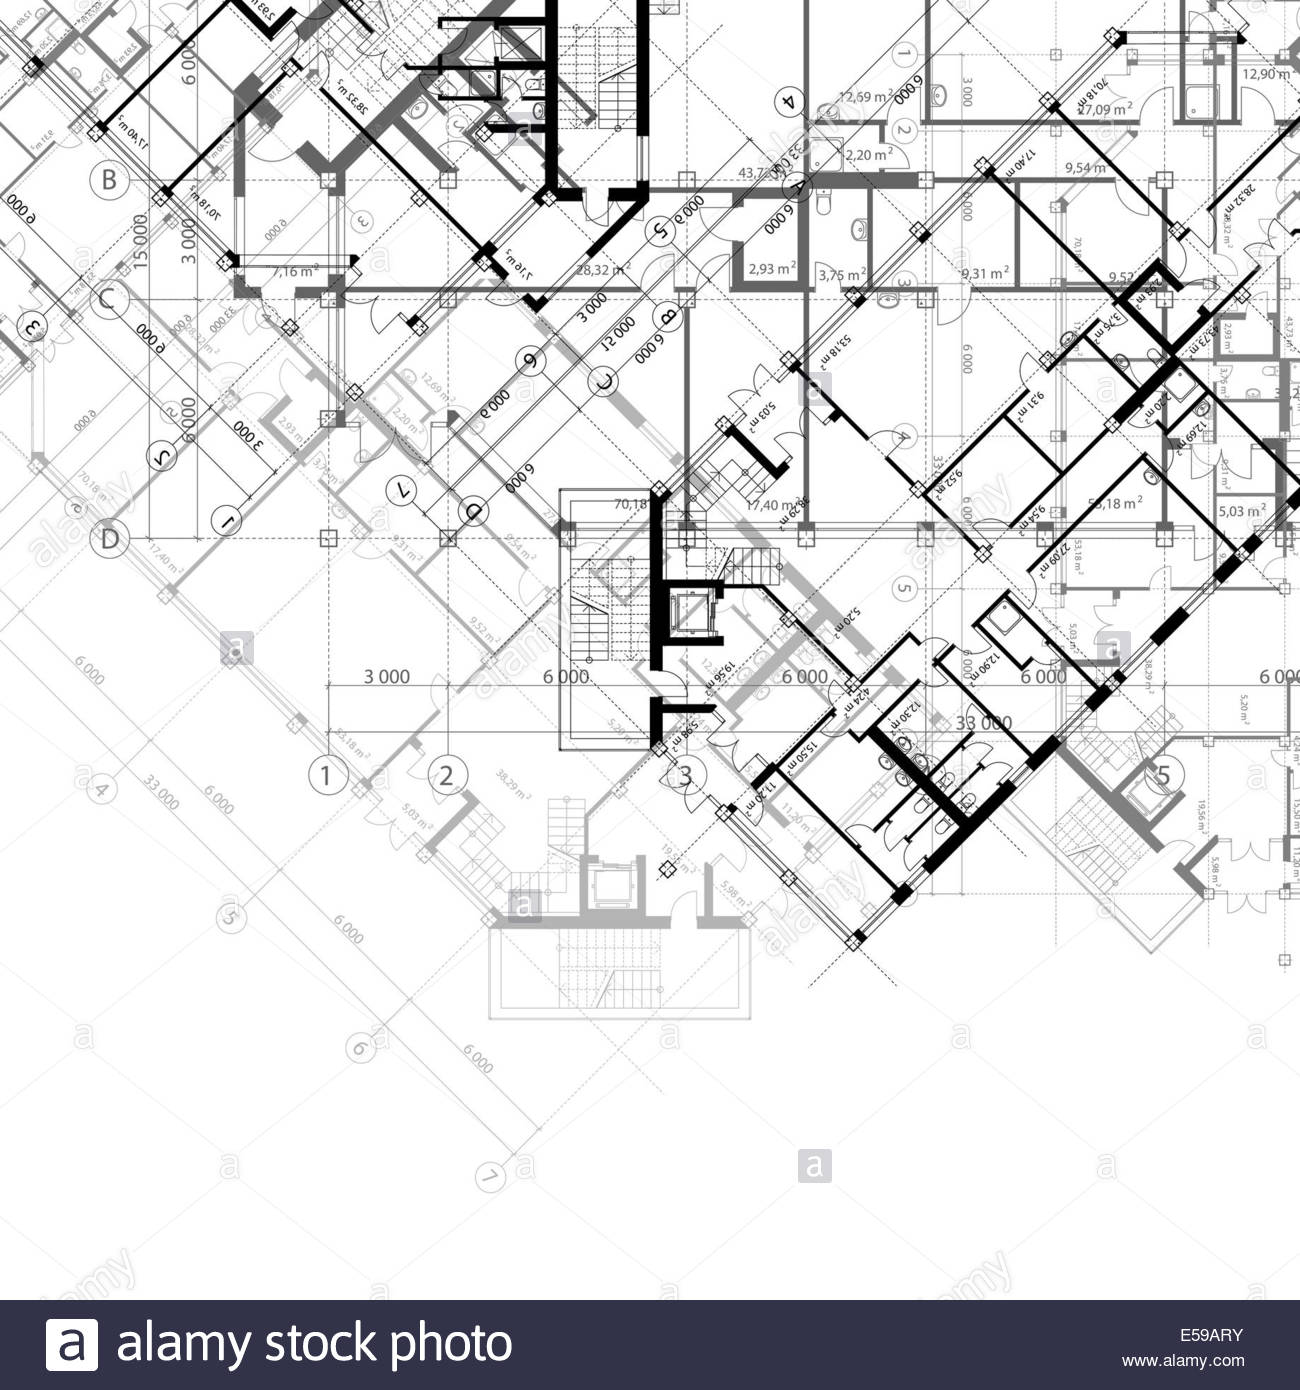 1300x1390 Architectural Black And White Background With Plans Of Building